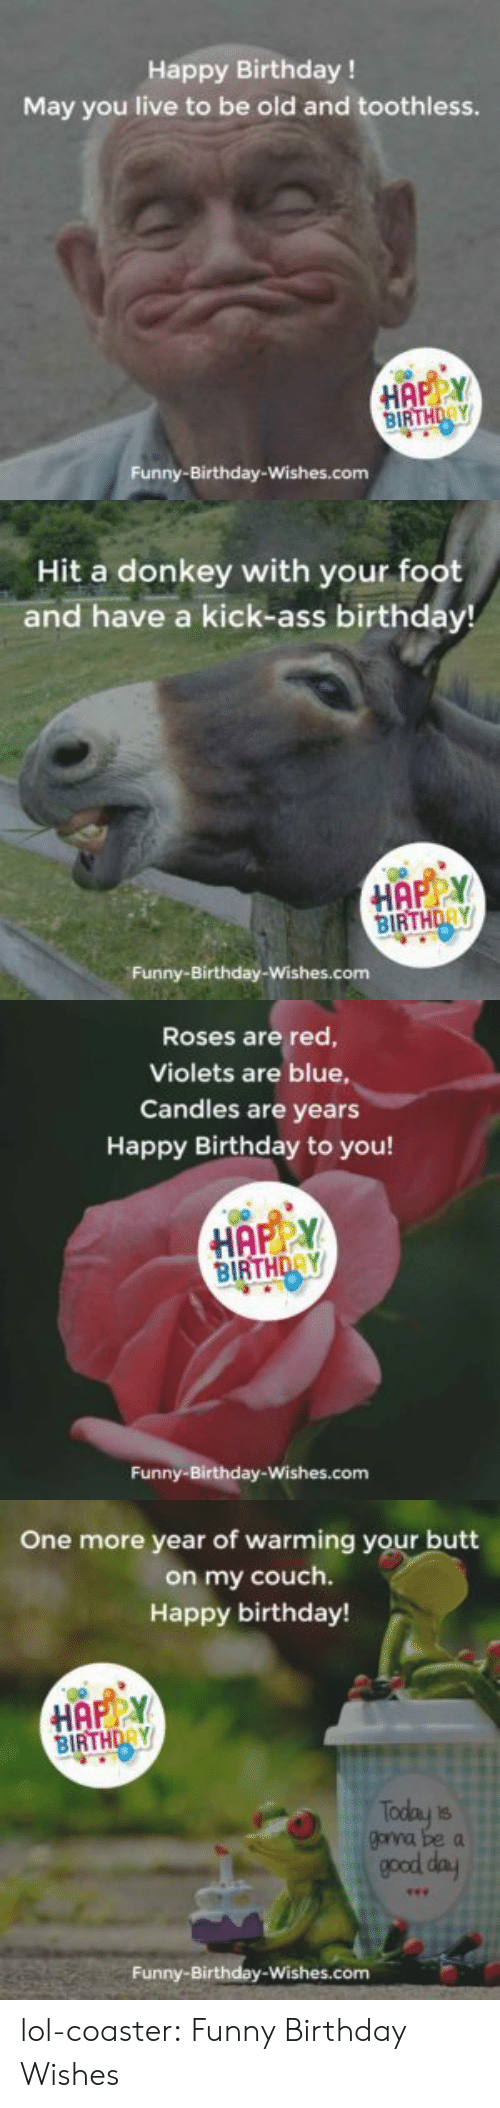 Red Violets Are: Happy Birthday !  May you live to be old and toothless.  BIRTHDAY  Funny-Birthday-Wishes.com   Hit a donkey with your foot  and have a kick-ass birthday!  HAPY  BIRTHDAY  Funny-Birthday-Wishes.com   Roses are red  Violets are blue,  Candles are years  Happy Birthday to you!  HAPPY  BIRTHDRY  Funny-Birthday-Wishes.com   One more year of warming your butt  on my couch.  Happy birthday!  BIRTHDAY  goyna be a  good day  Funny-Birthday-Wishes.com lol-coaster:  Funny Birthday Wishes